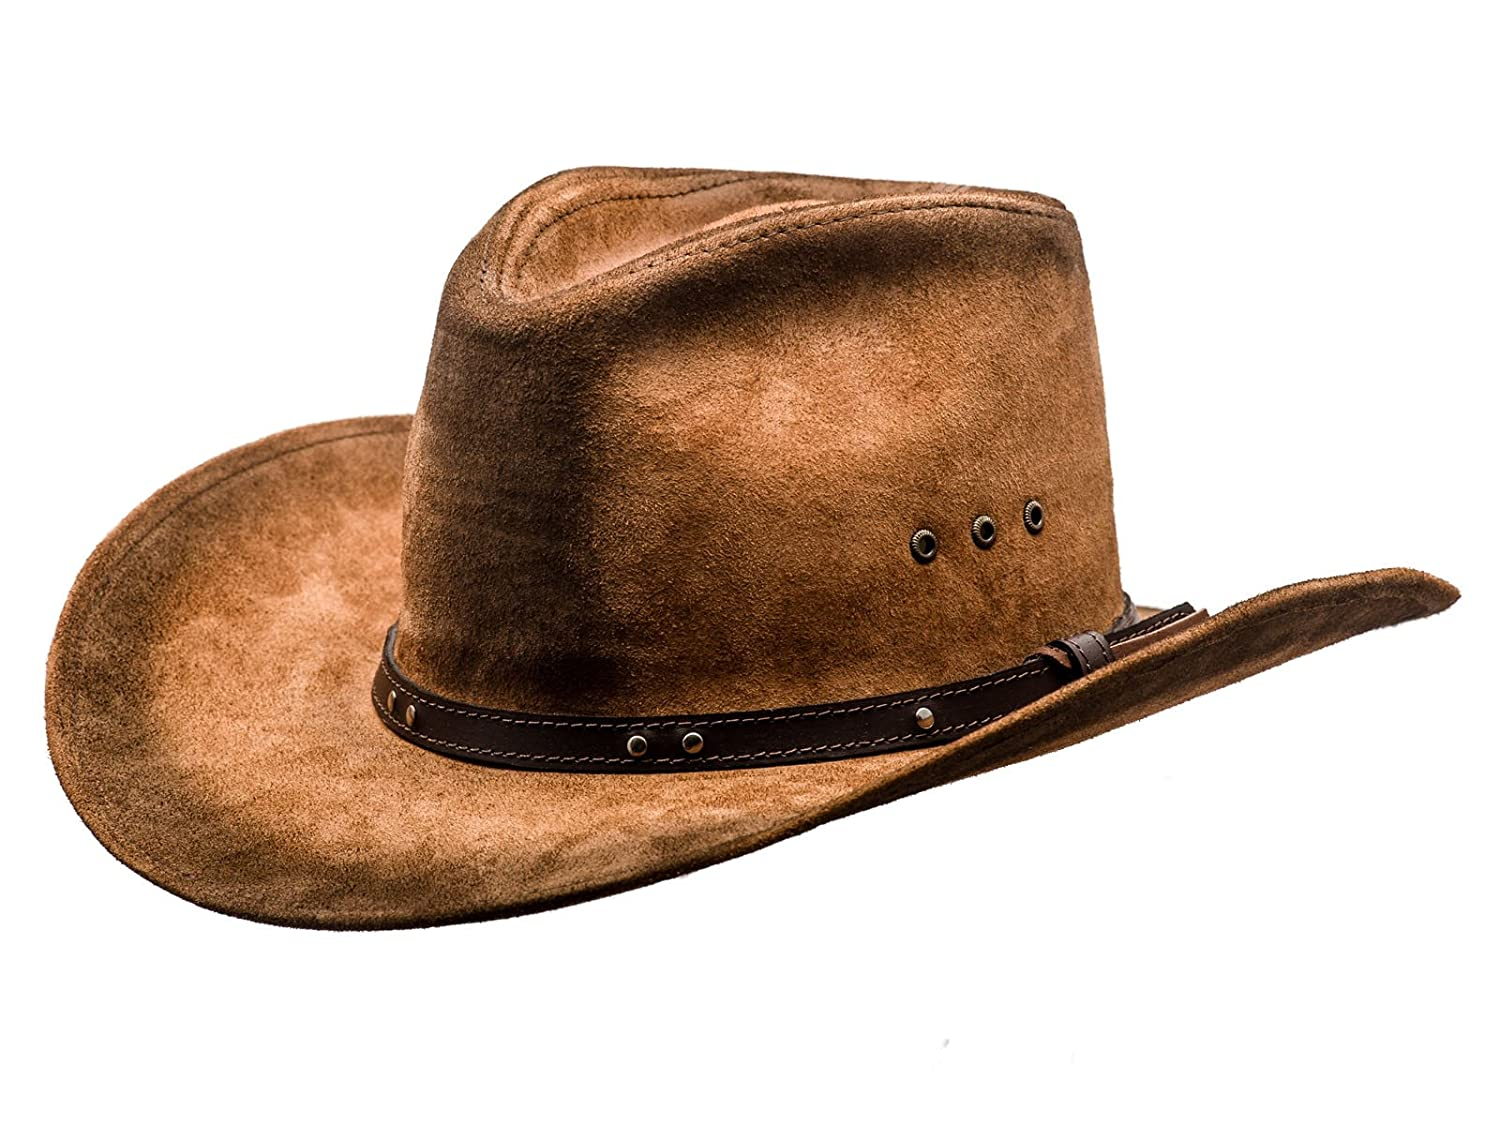 7581002c14a Sterkowski Cattle Leather Classic Western Cowboy Outback Hat at Amazon  Men s Clothing store